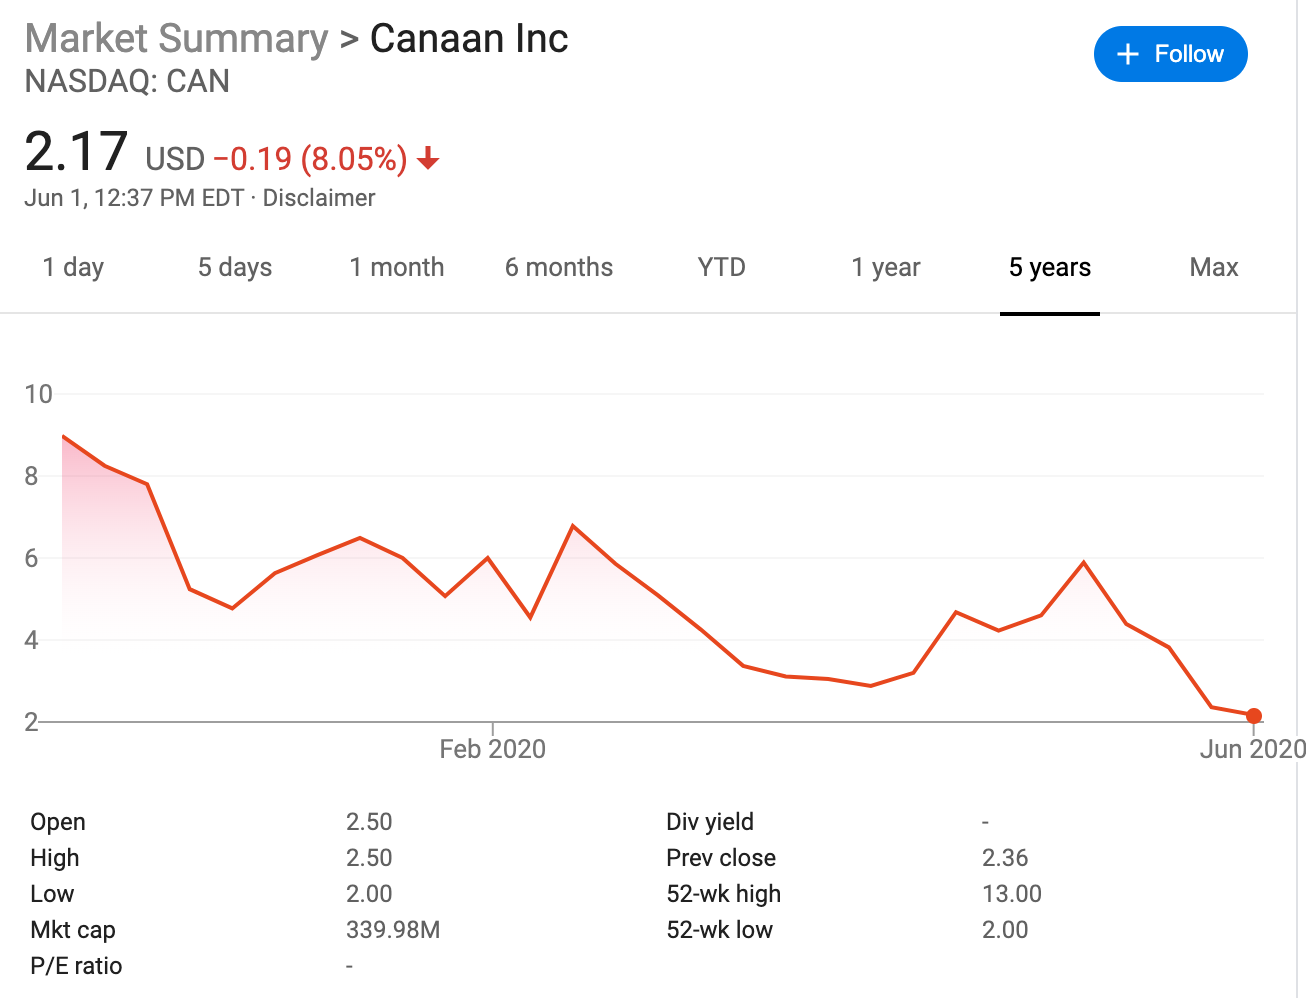 While Trump Orders Pension Fund to Halt Chinese Investments; Fidelity and Renaissance Have Increased Shares of Mining Company Canaan Inc